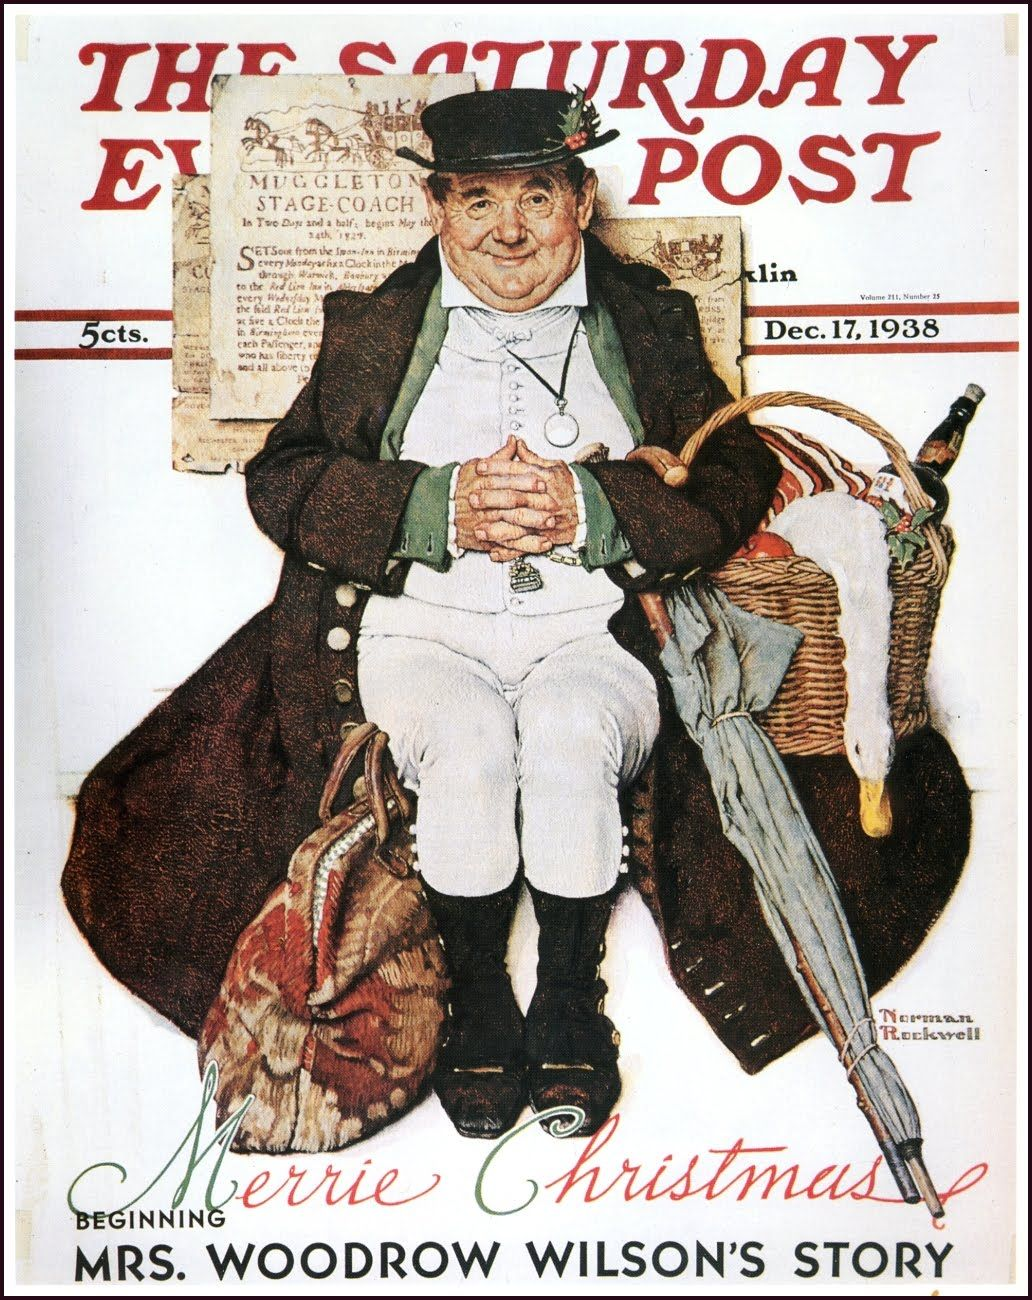 Pin by Susan Biggs on Norman Rockwell -Christmas | Pinterest ...